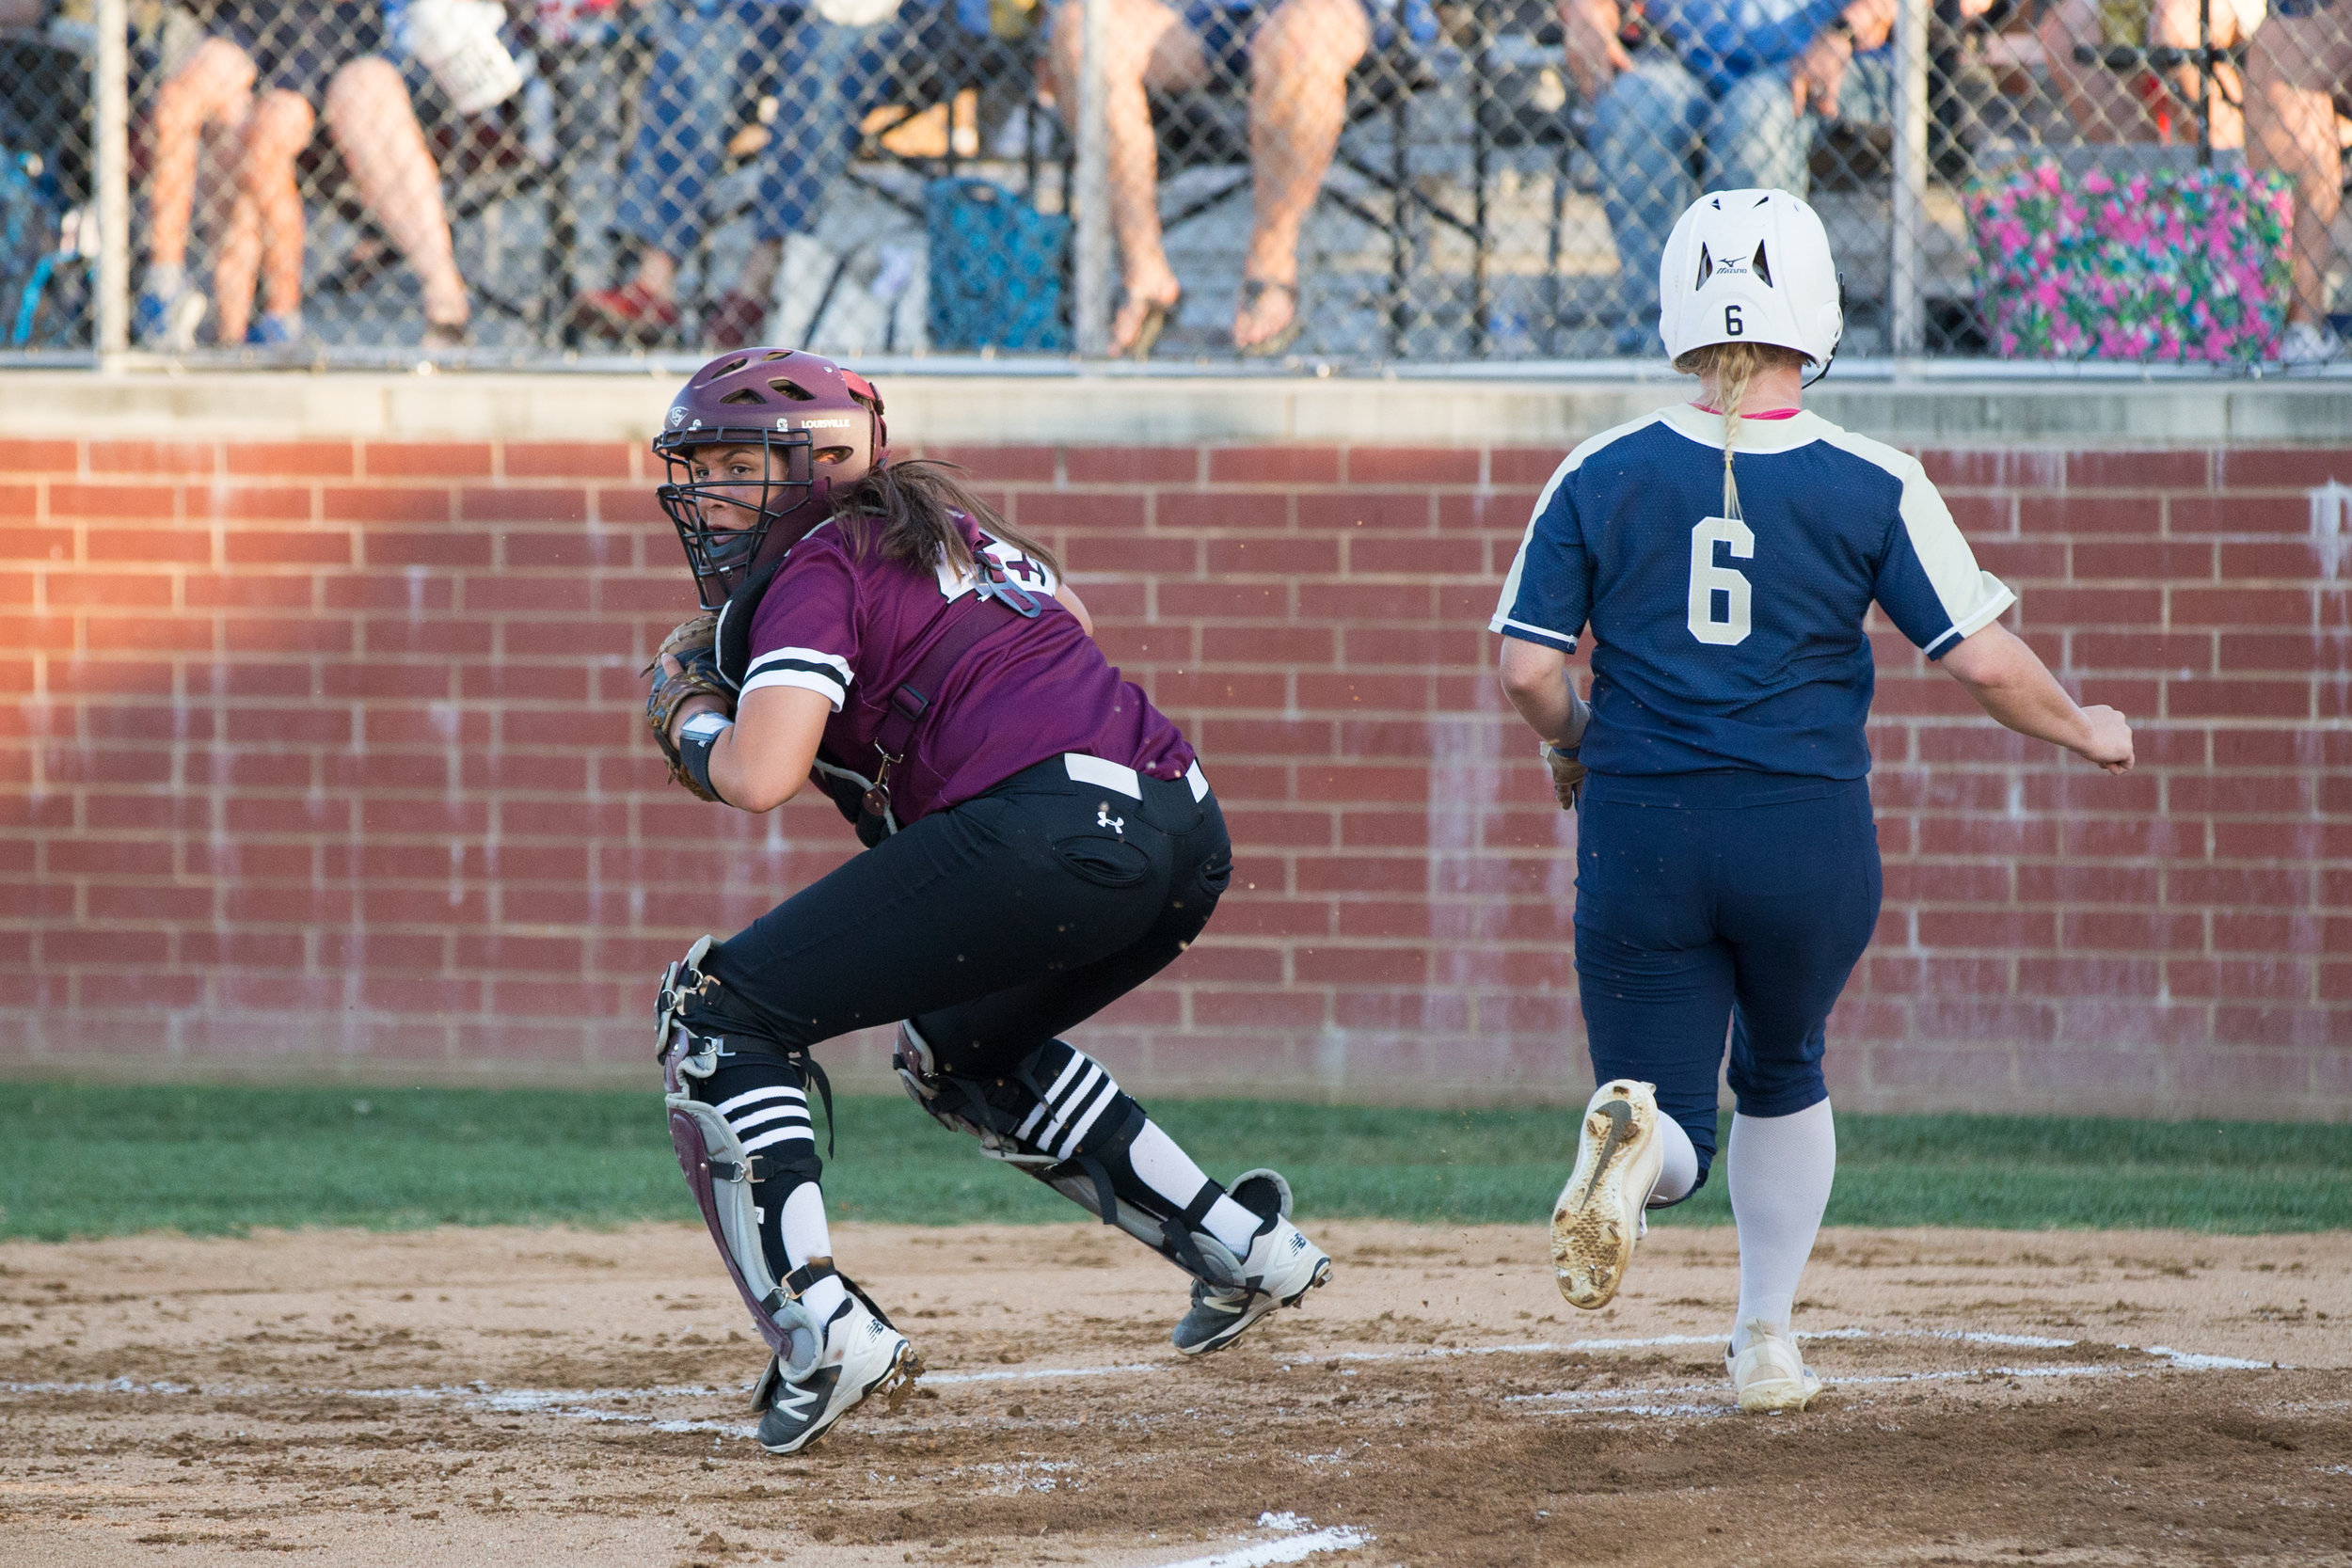 5_18 Wylie Softball-134.jpg